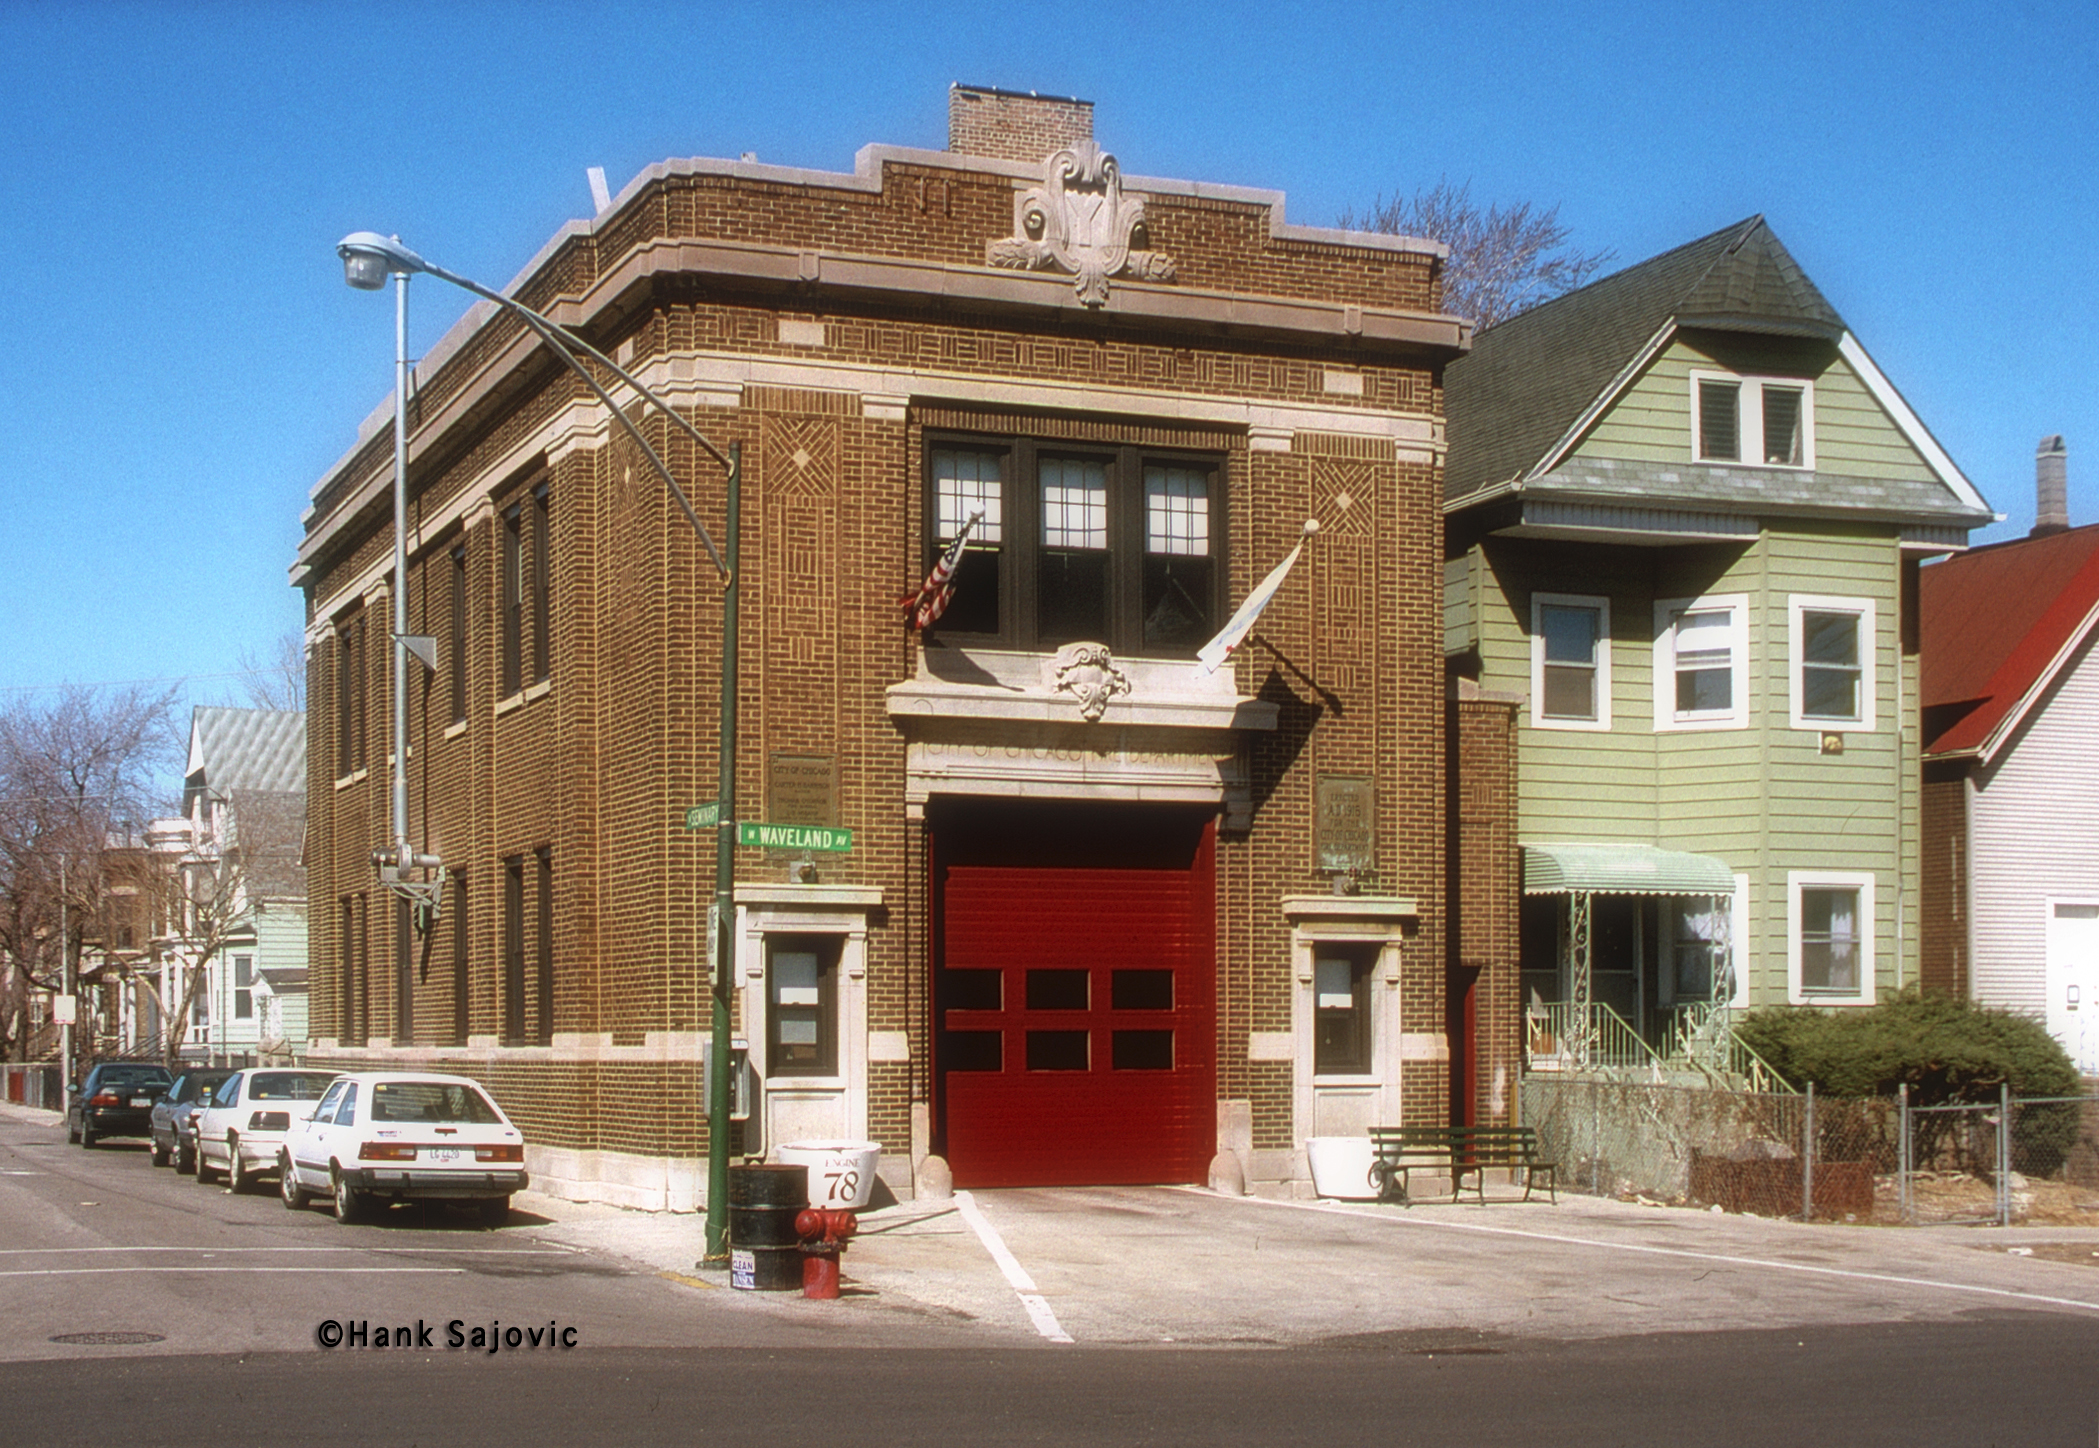 Chicago Fire Department Engine 78's house